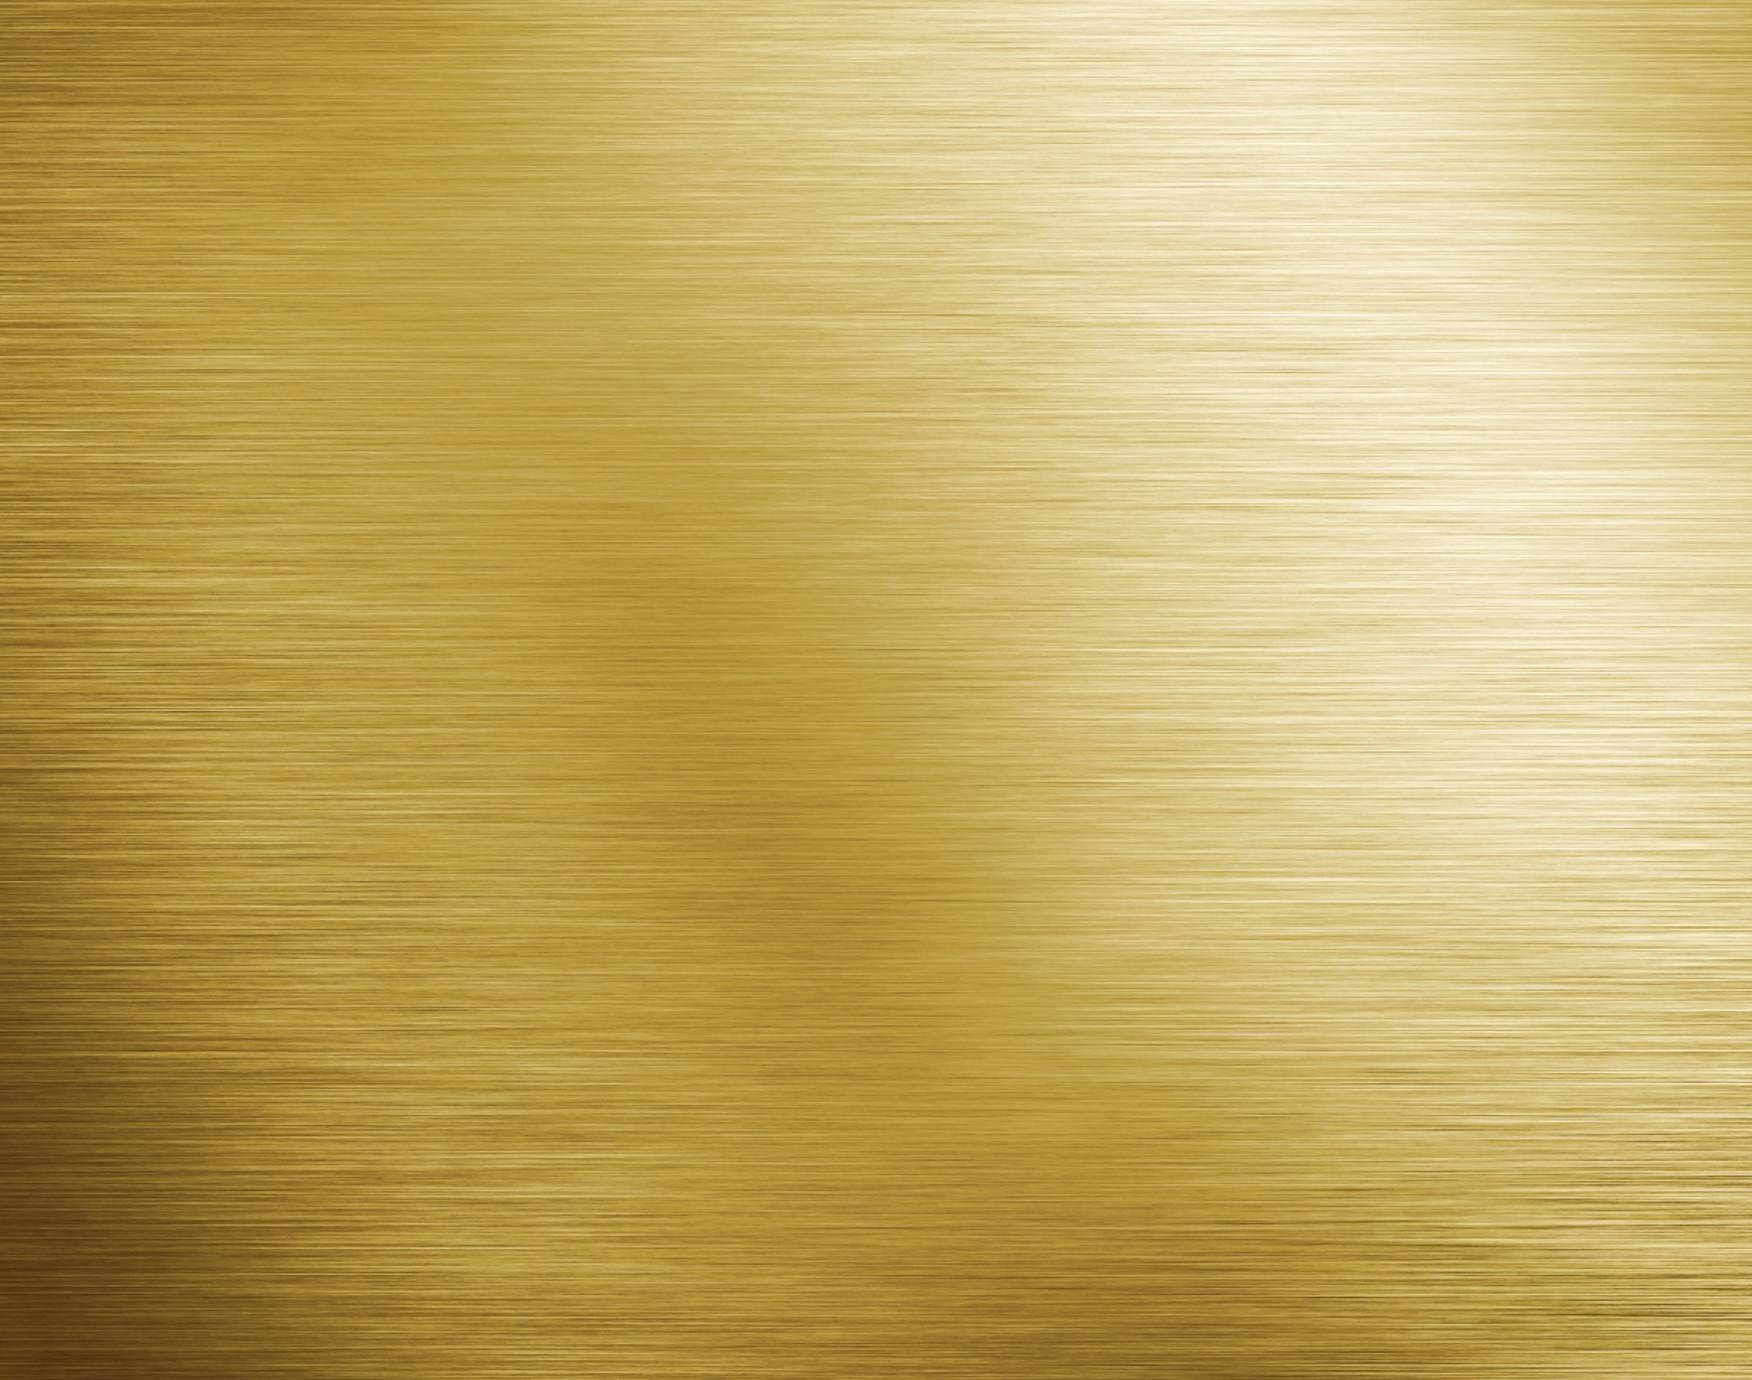 Gold Backgrounds Image - Wallpaper Cave